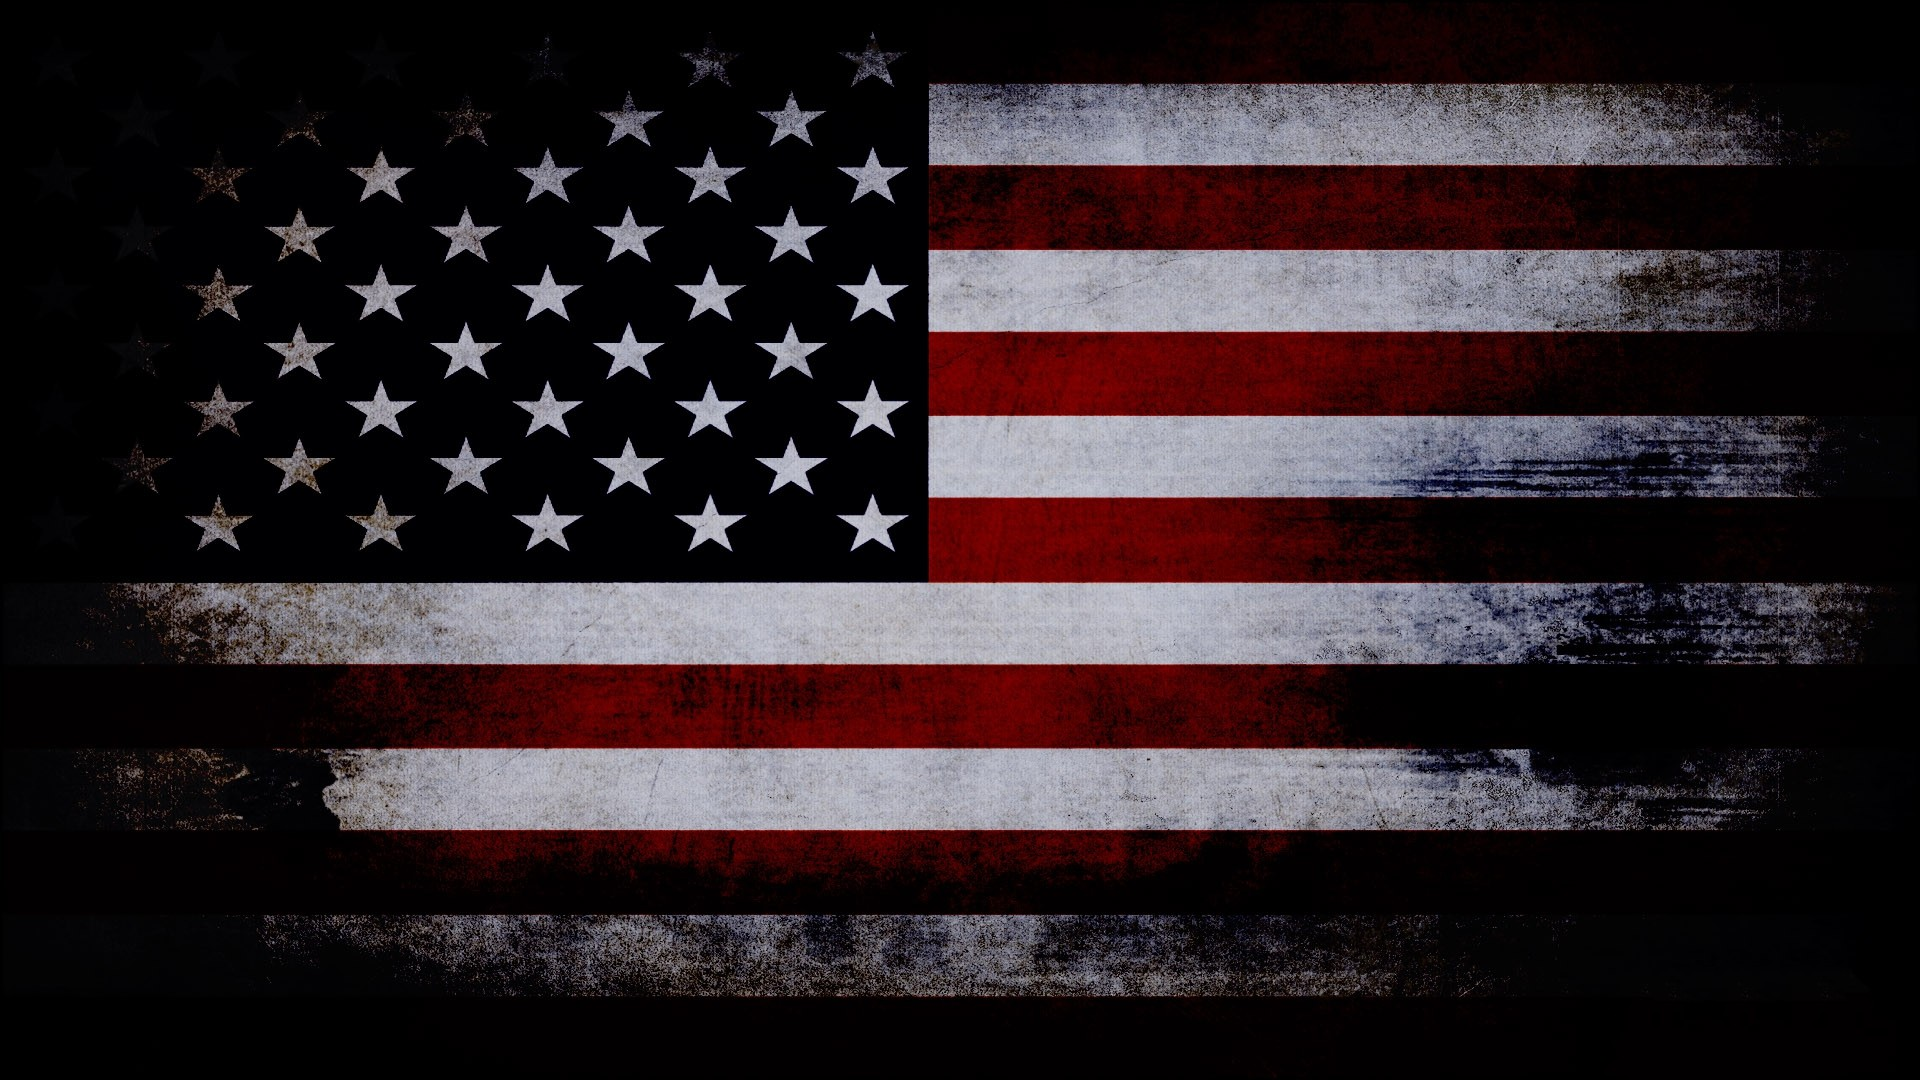 1920x1080 USA Flag Iphone Desktop Wallpaper.